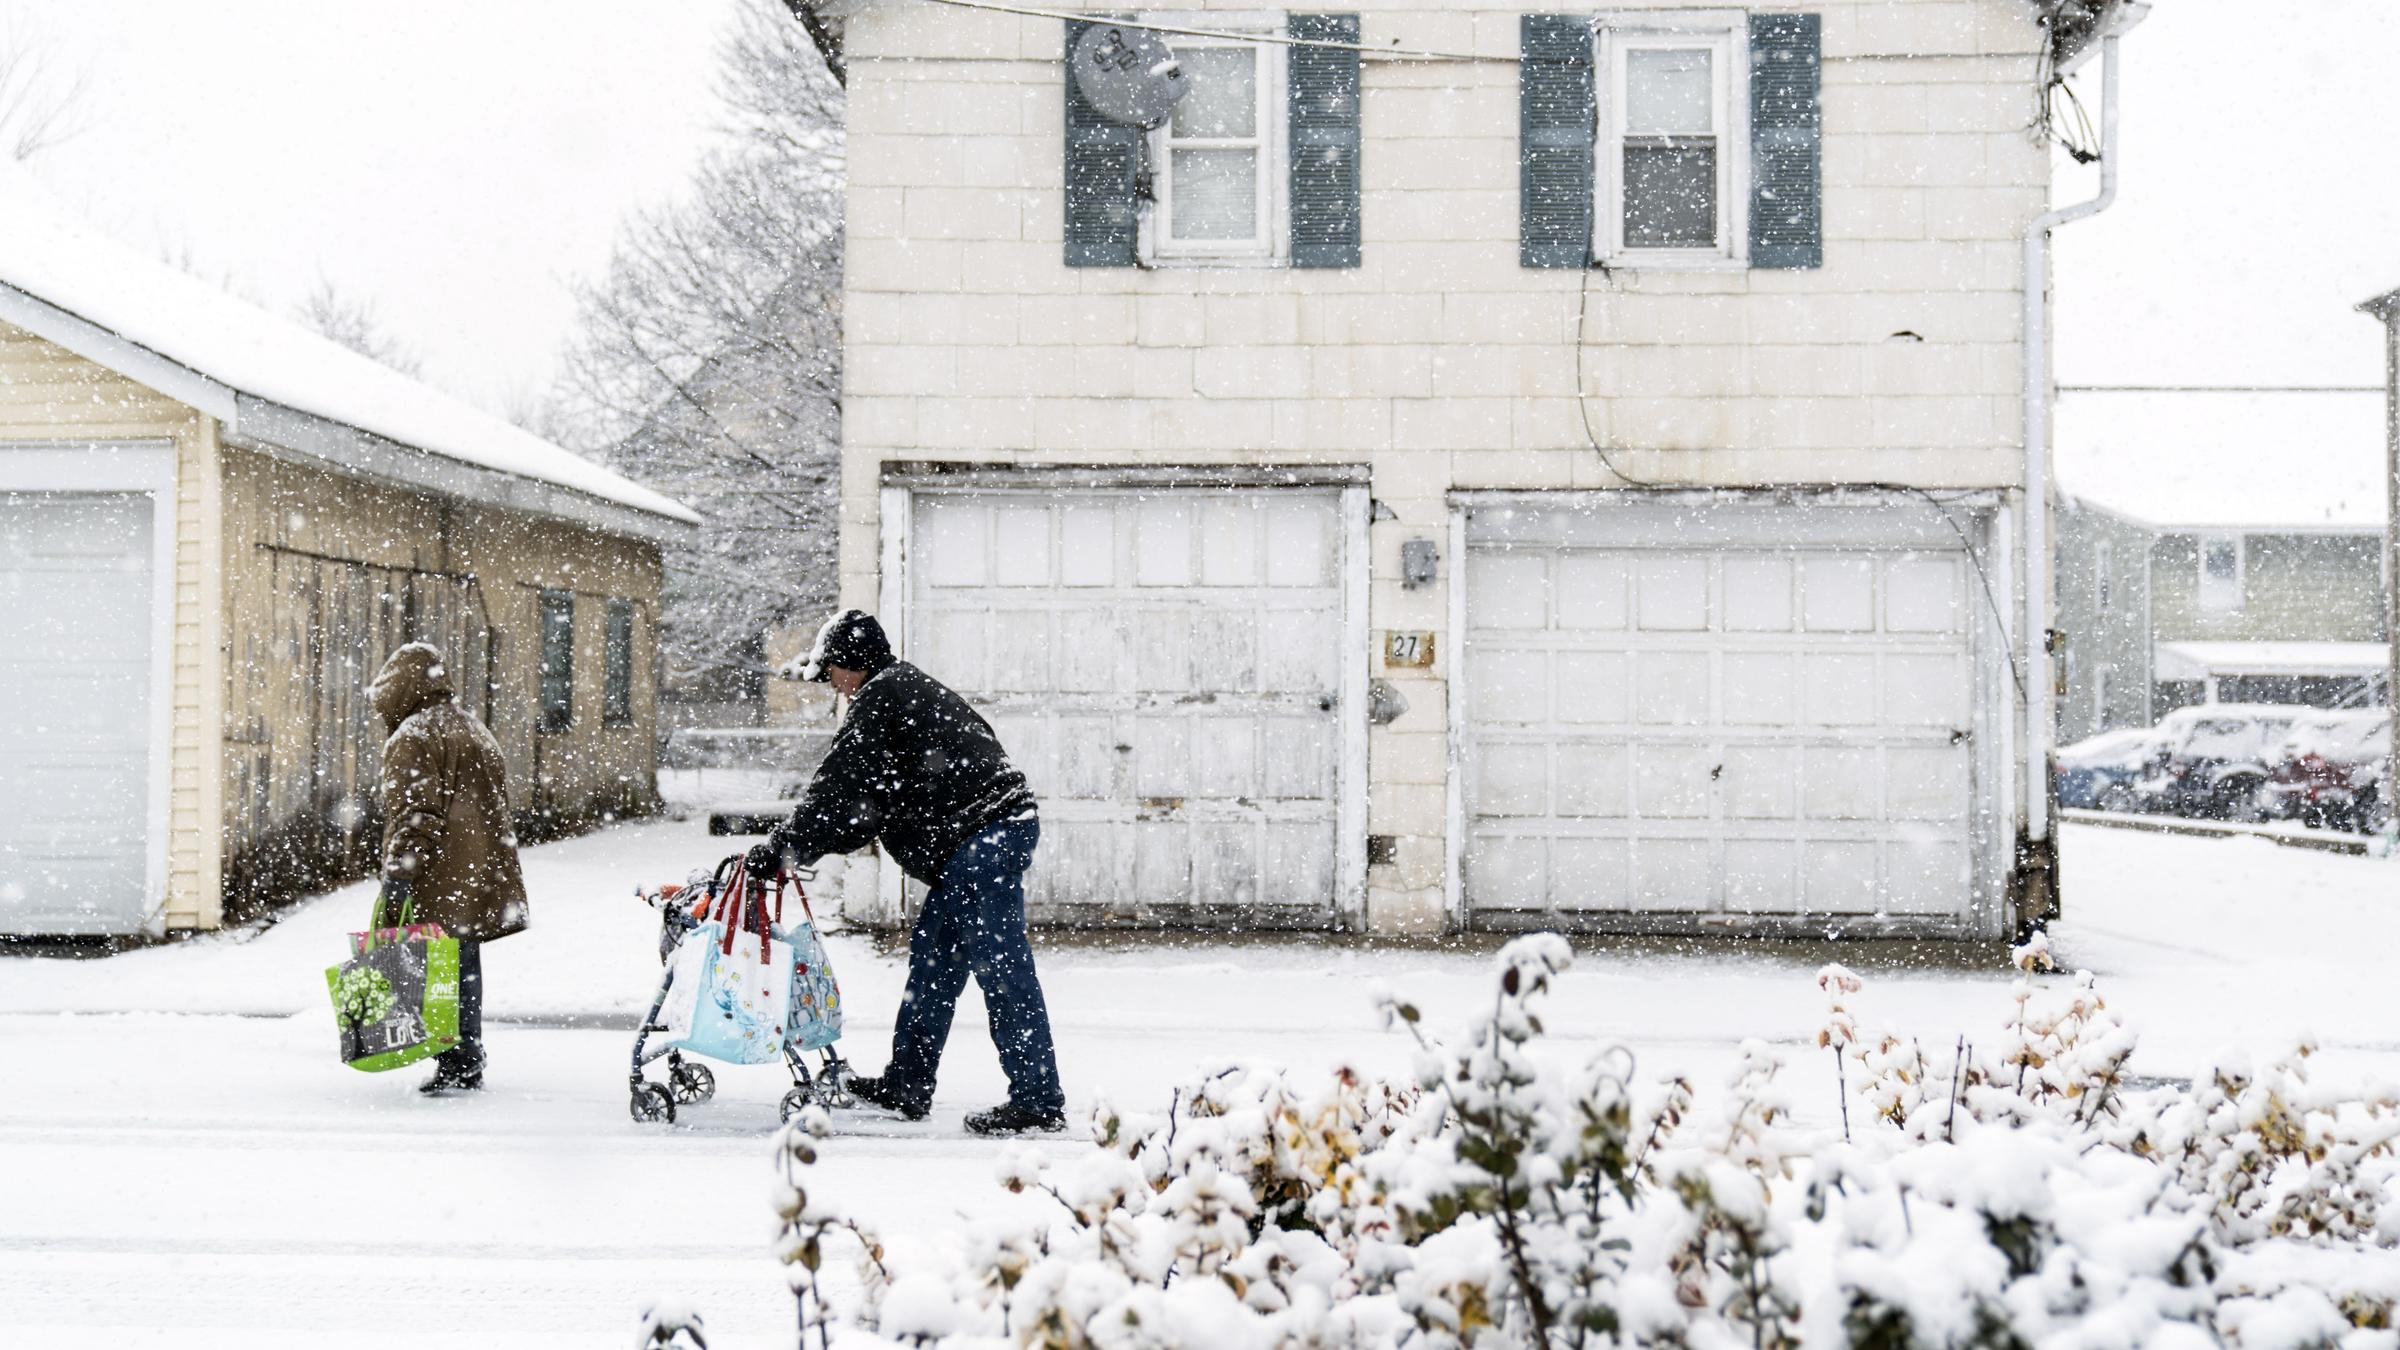 Snow storm pounds U.S. northeast for second time in 1 week